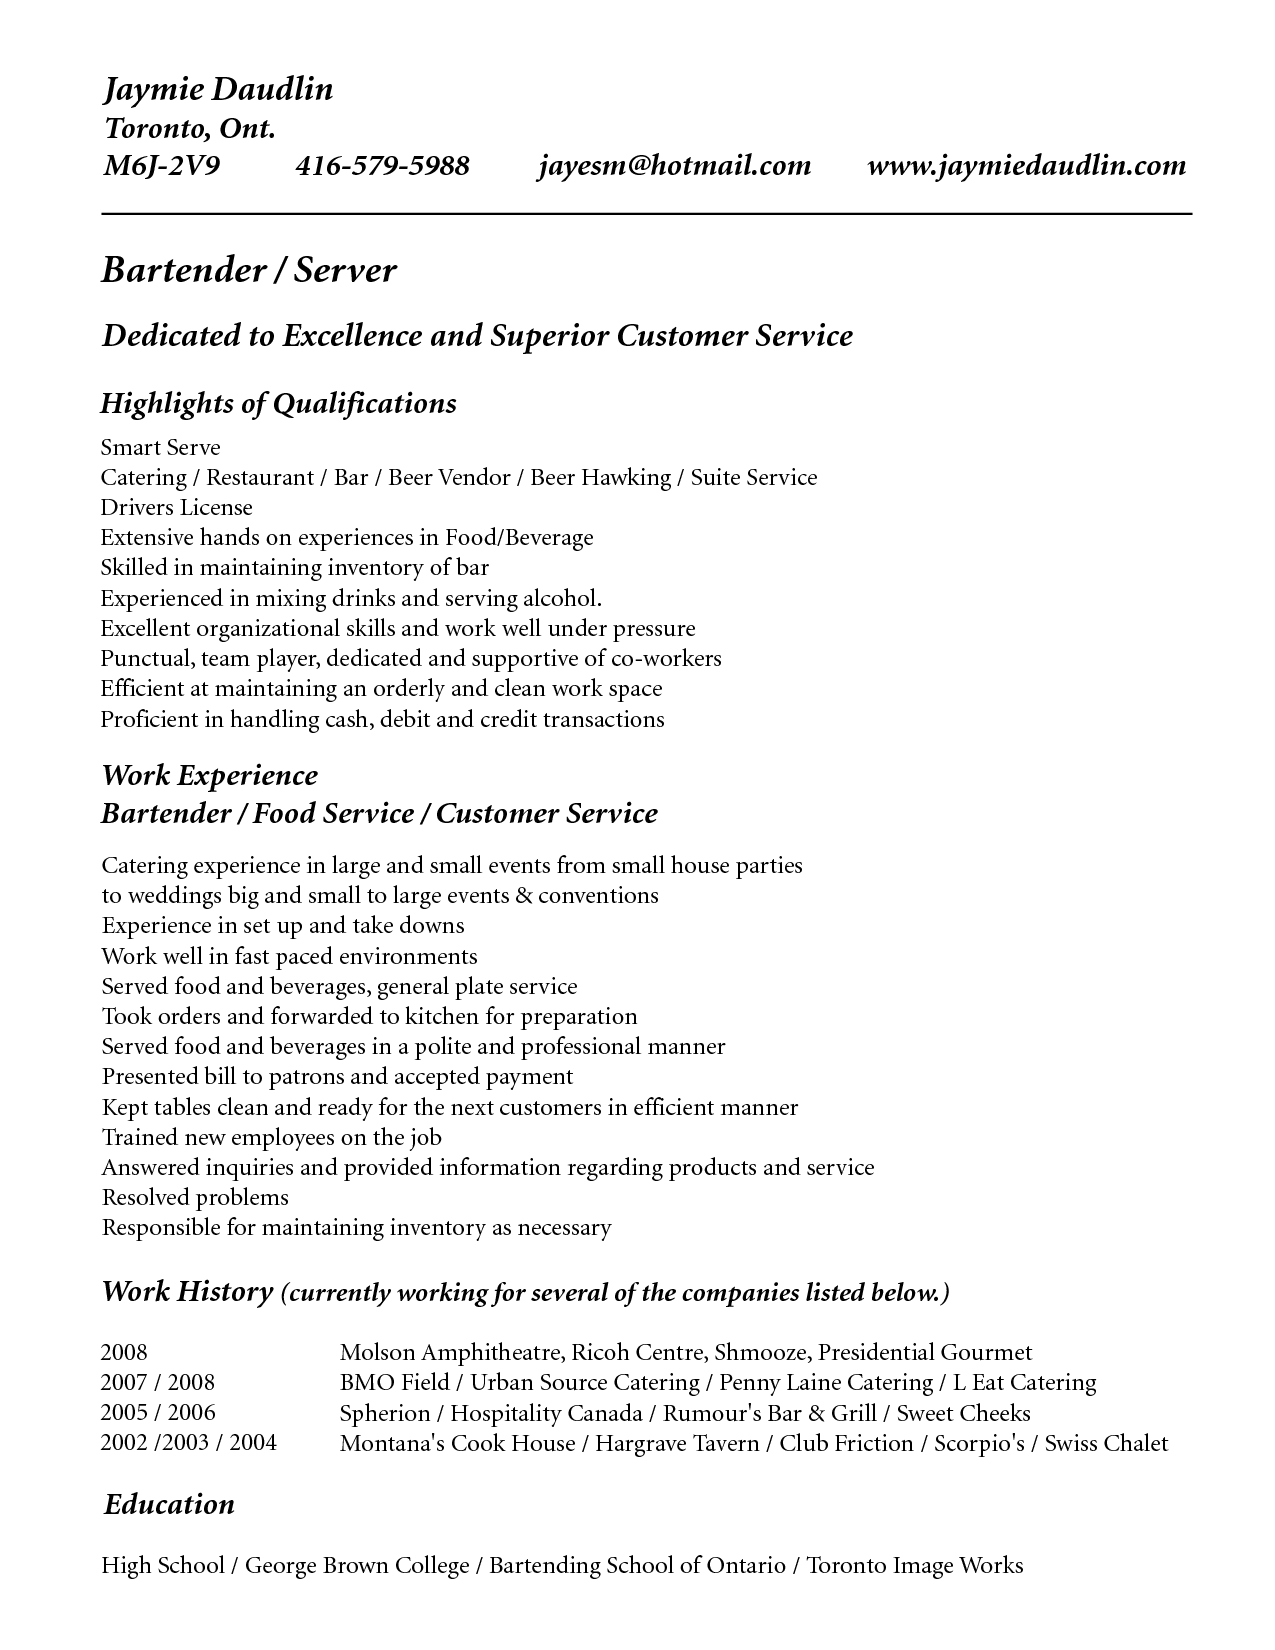 Bartender Duties On Resume Resume Template For Bartender No Experience Http Www